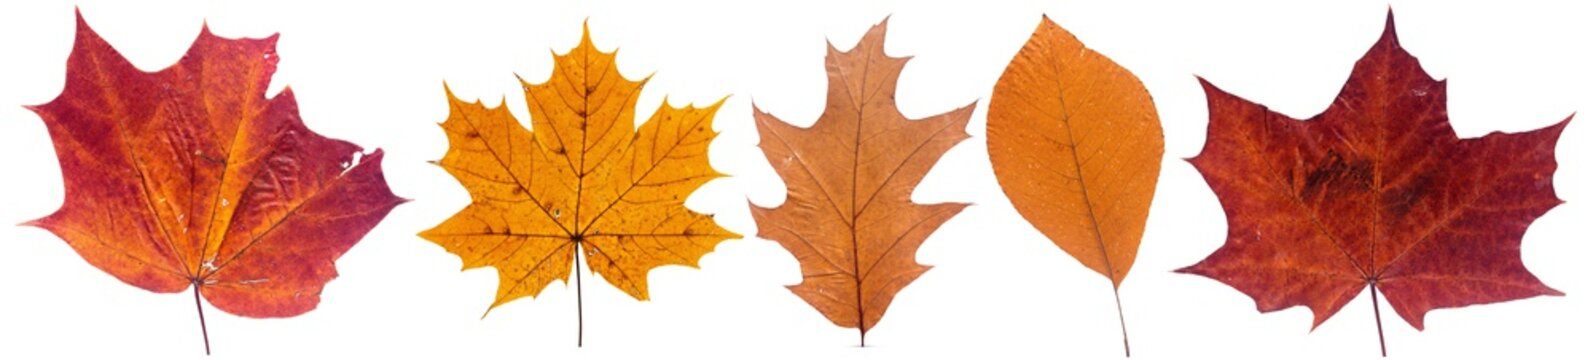 Set of autumn leaves isolated on white background. High resolution.